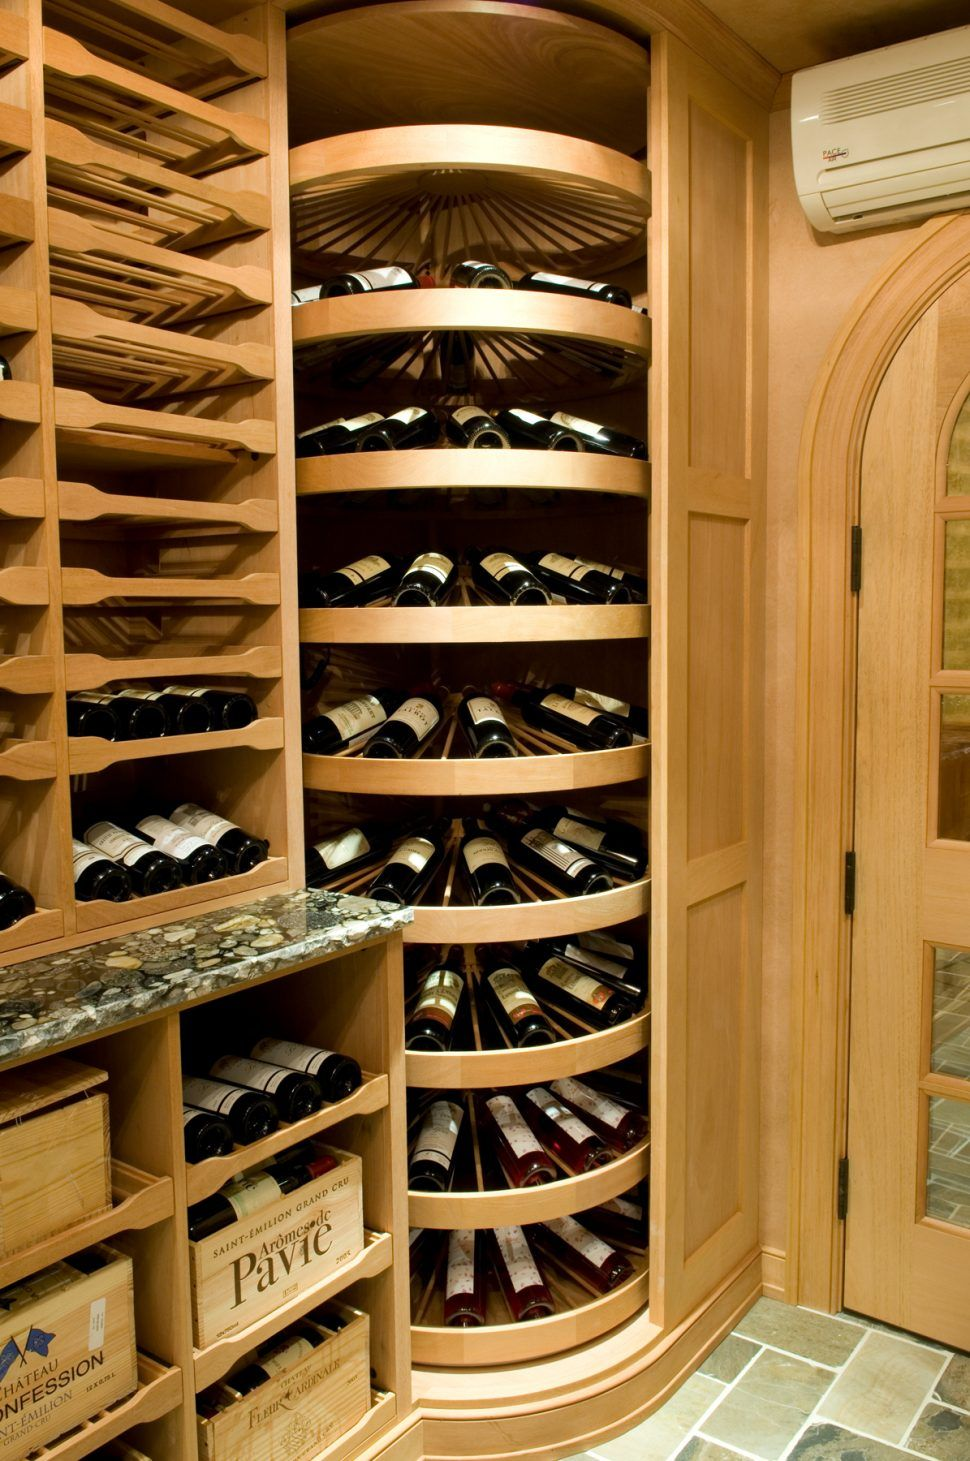 Fullsize Of Wine Racks America